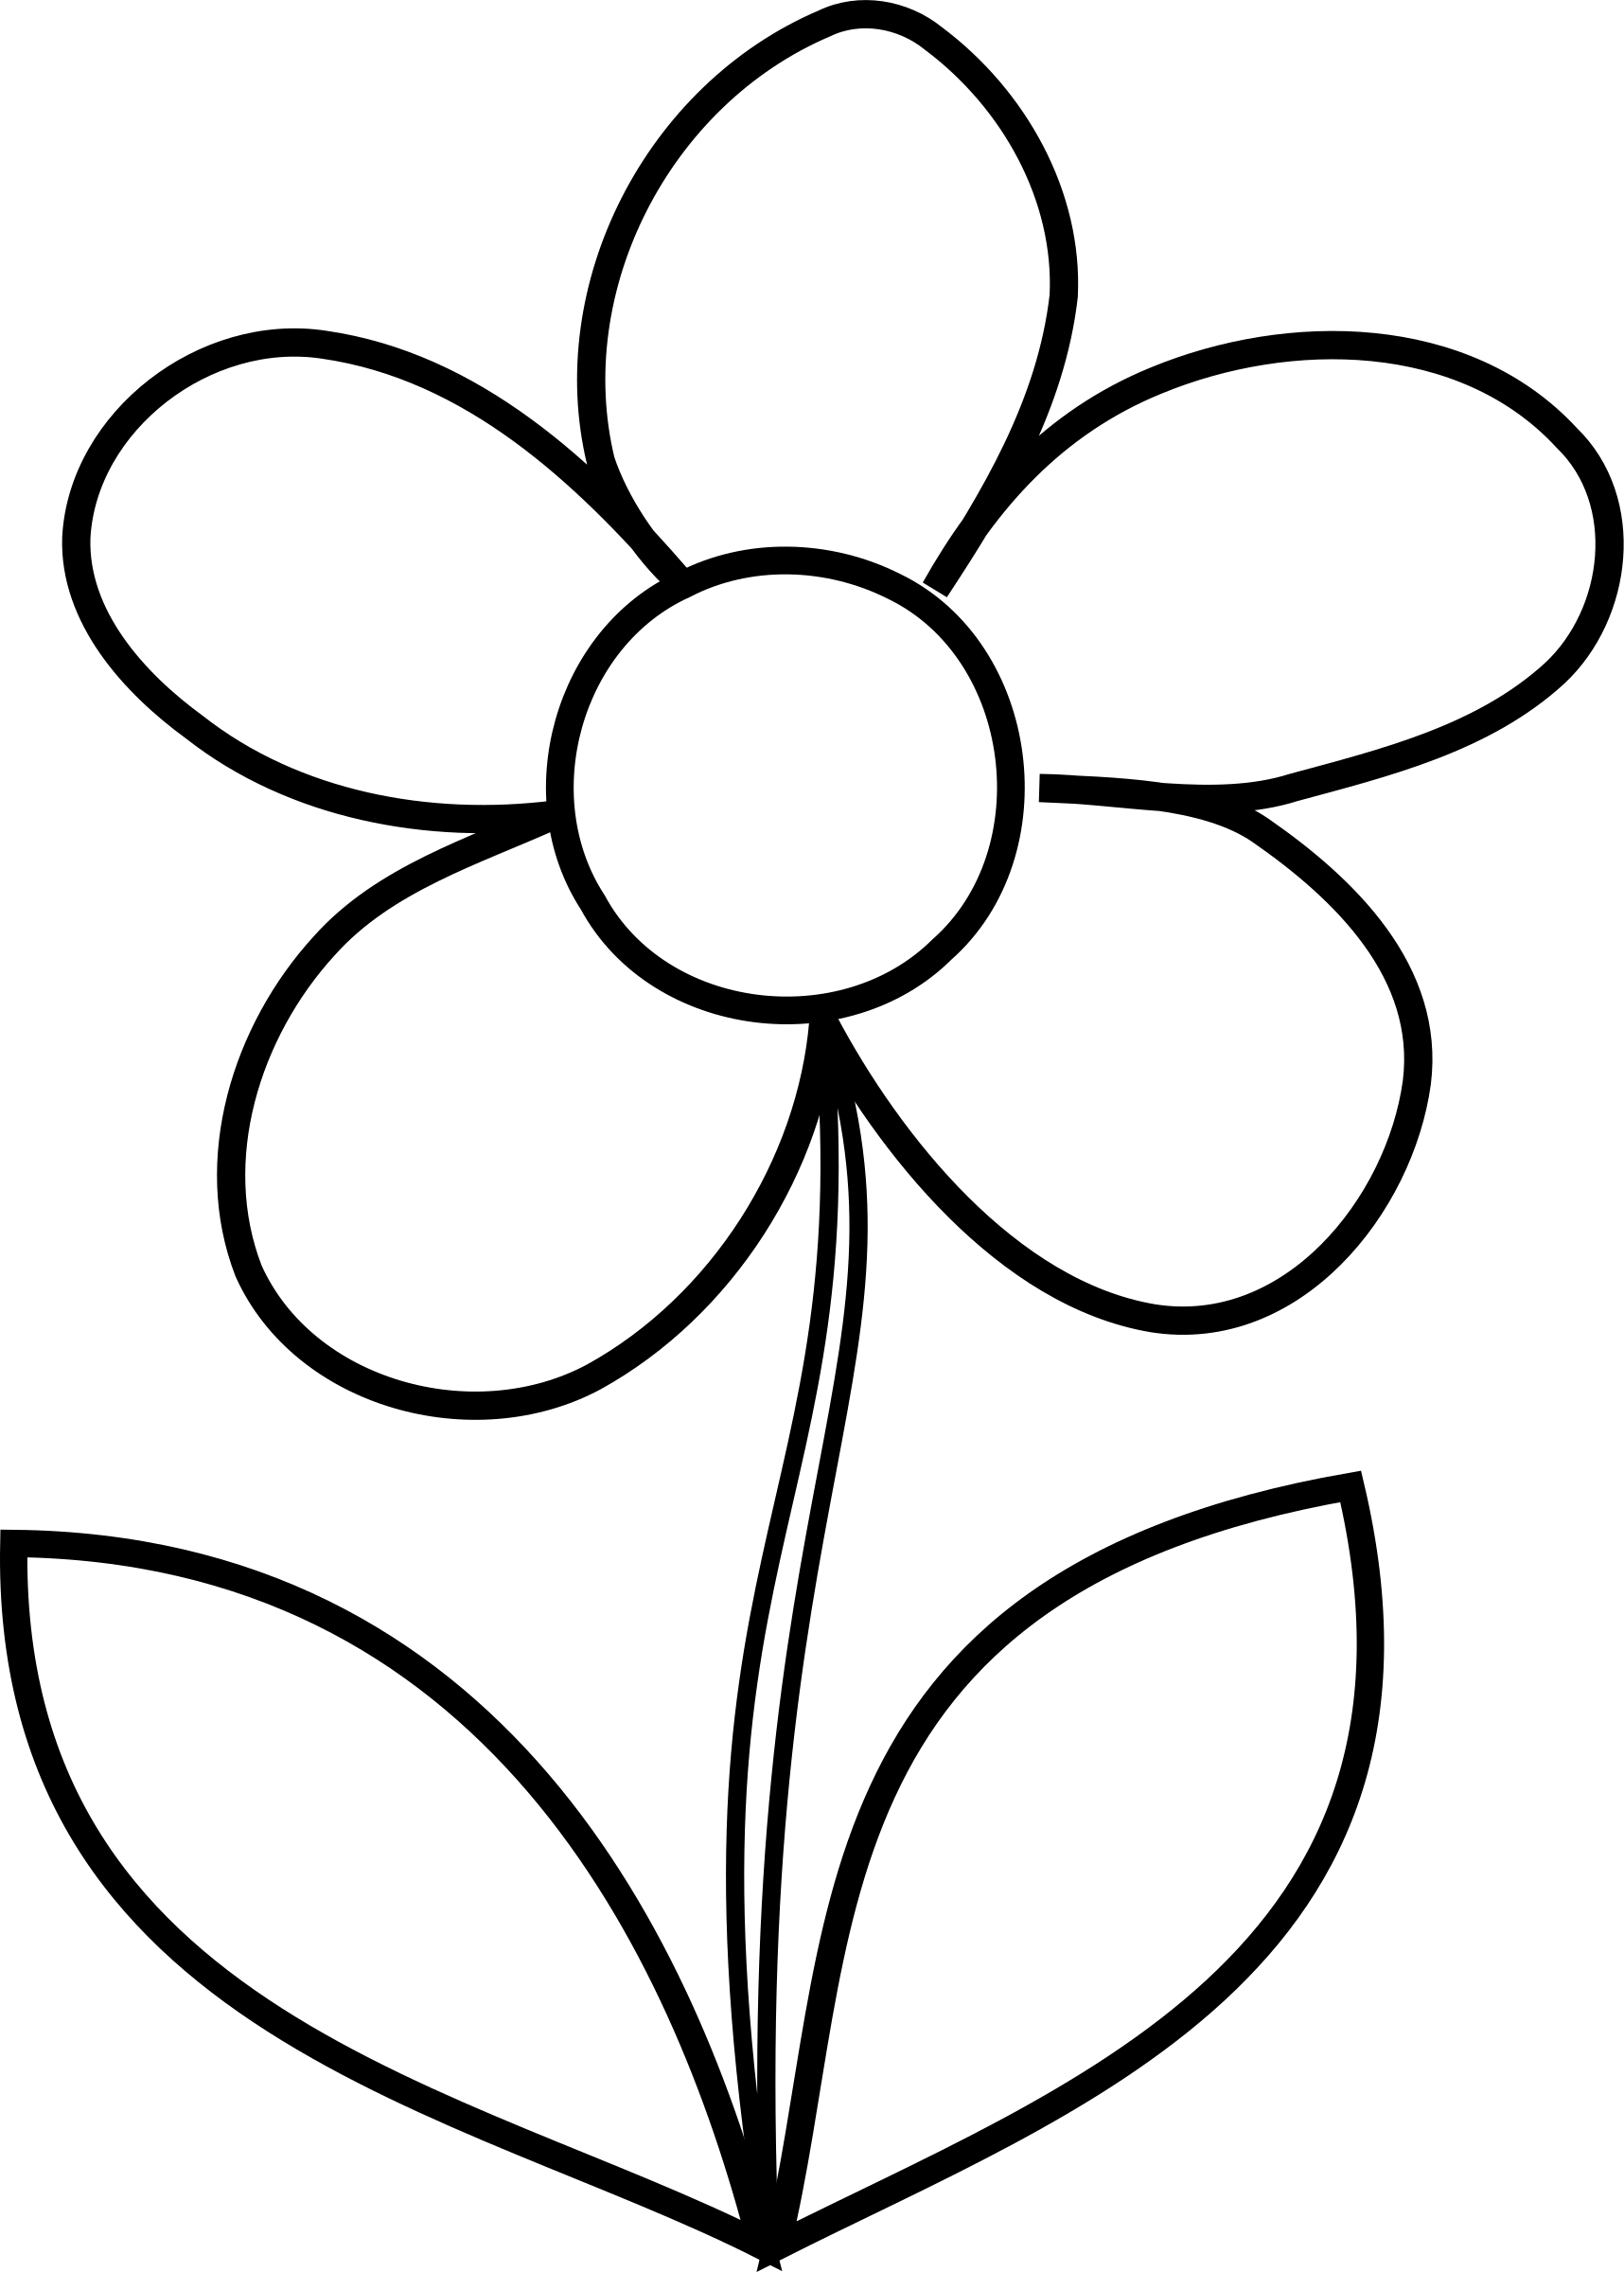 Flower black and white simple. Bw by malenki from